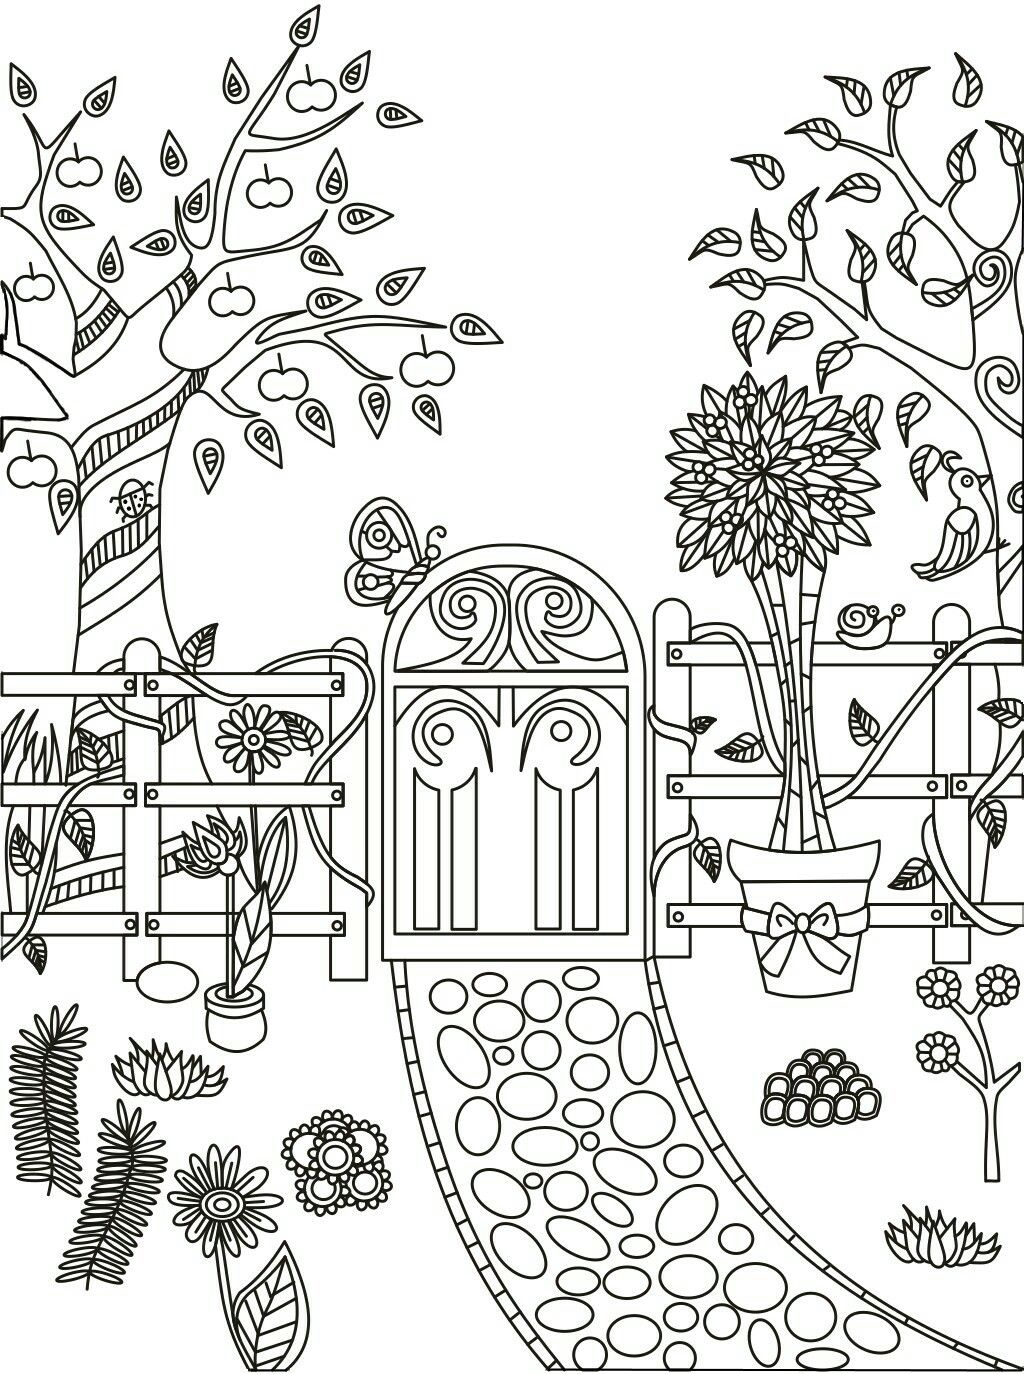 Pin By Coloring Pages For Adults On Coloring 2